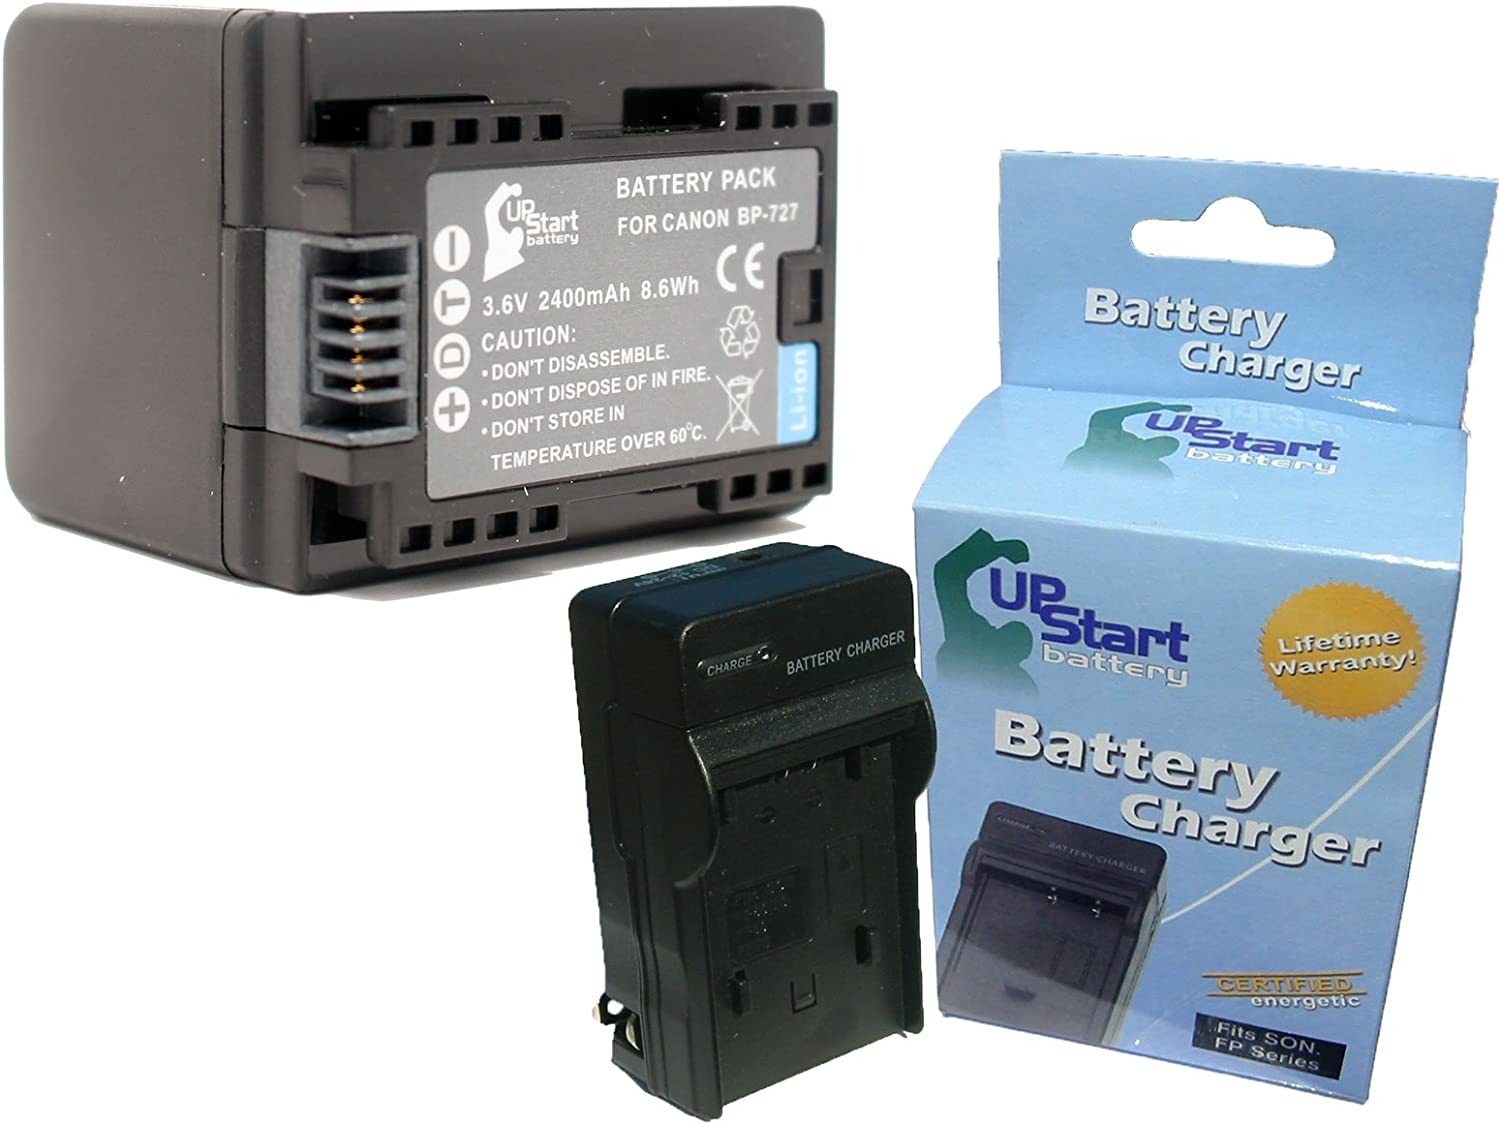 Charger with Car /& EU Adapters 2 Pack Replacement for Canon LEGRIA HF R46 Battery Compatible with Canon BP-727 Digital Camera Battery and Charger 2400mAh 3.6V Lithium-Ion